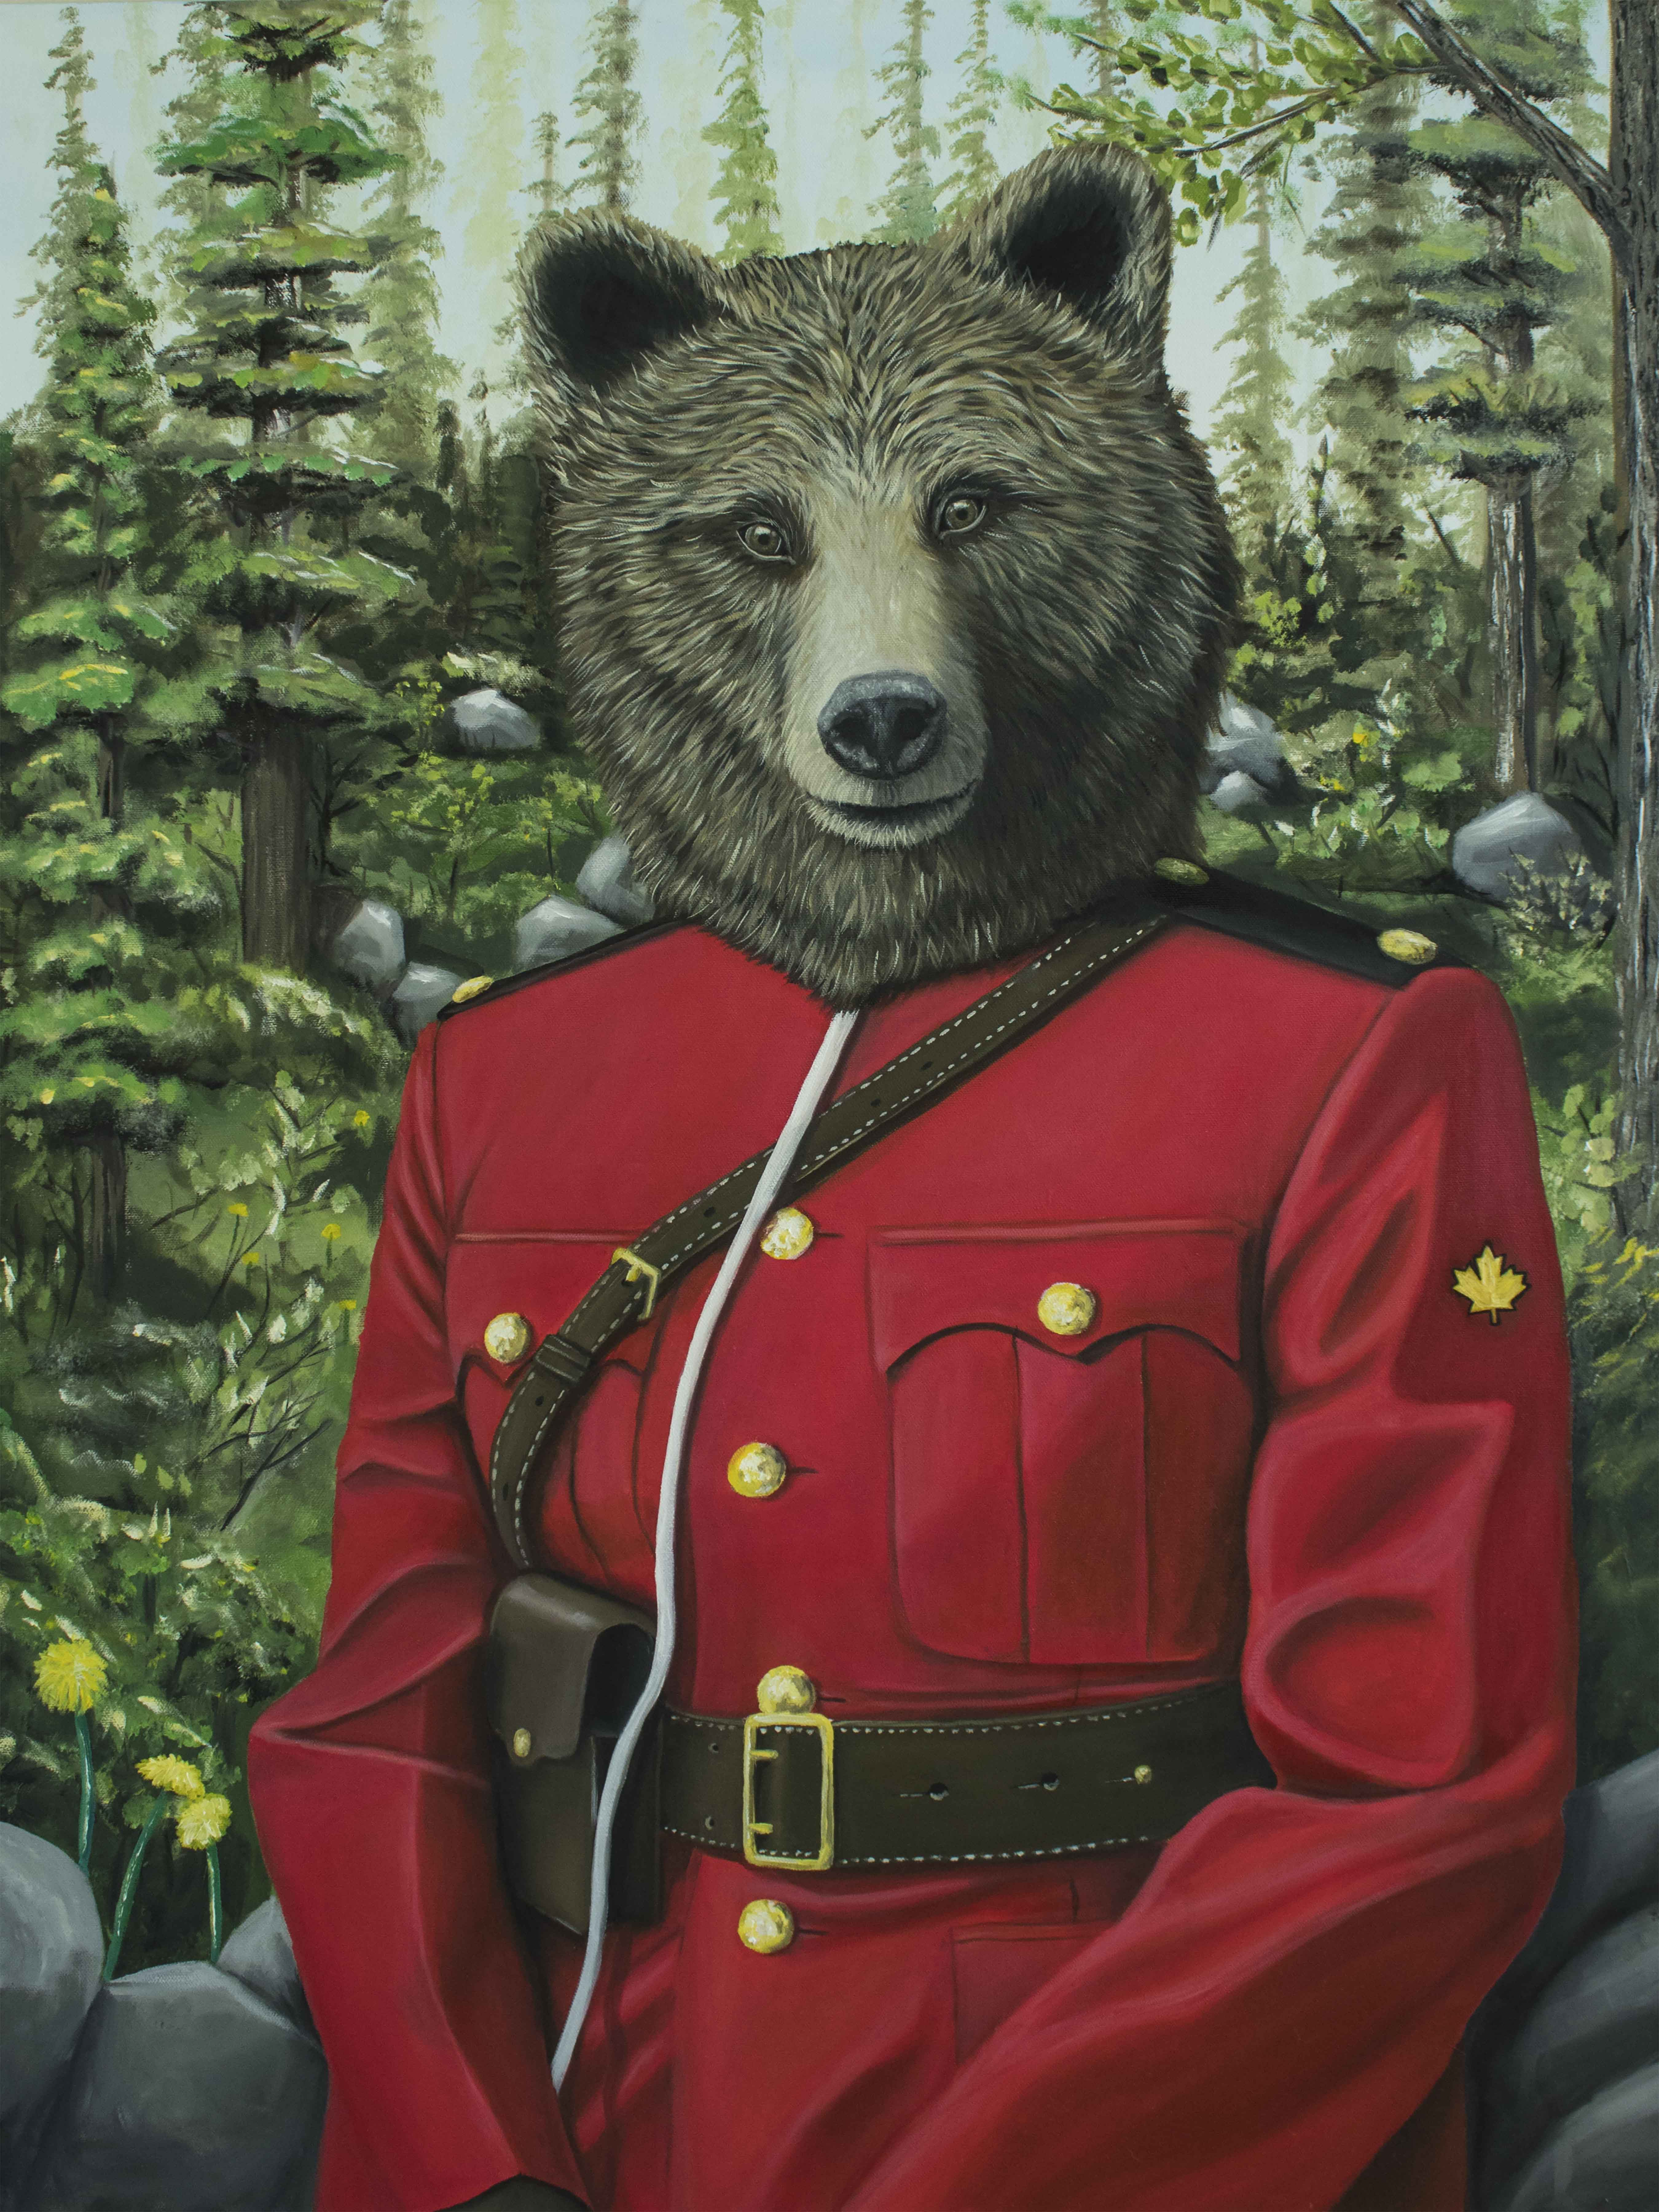 RCMP Grizzly